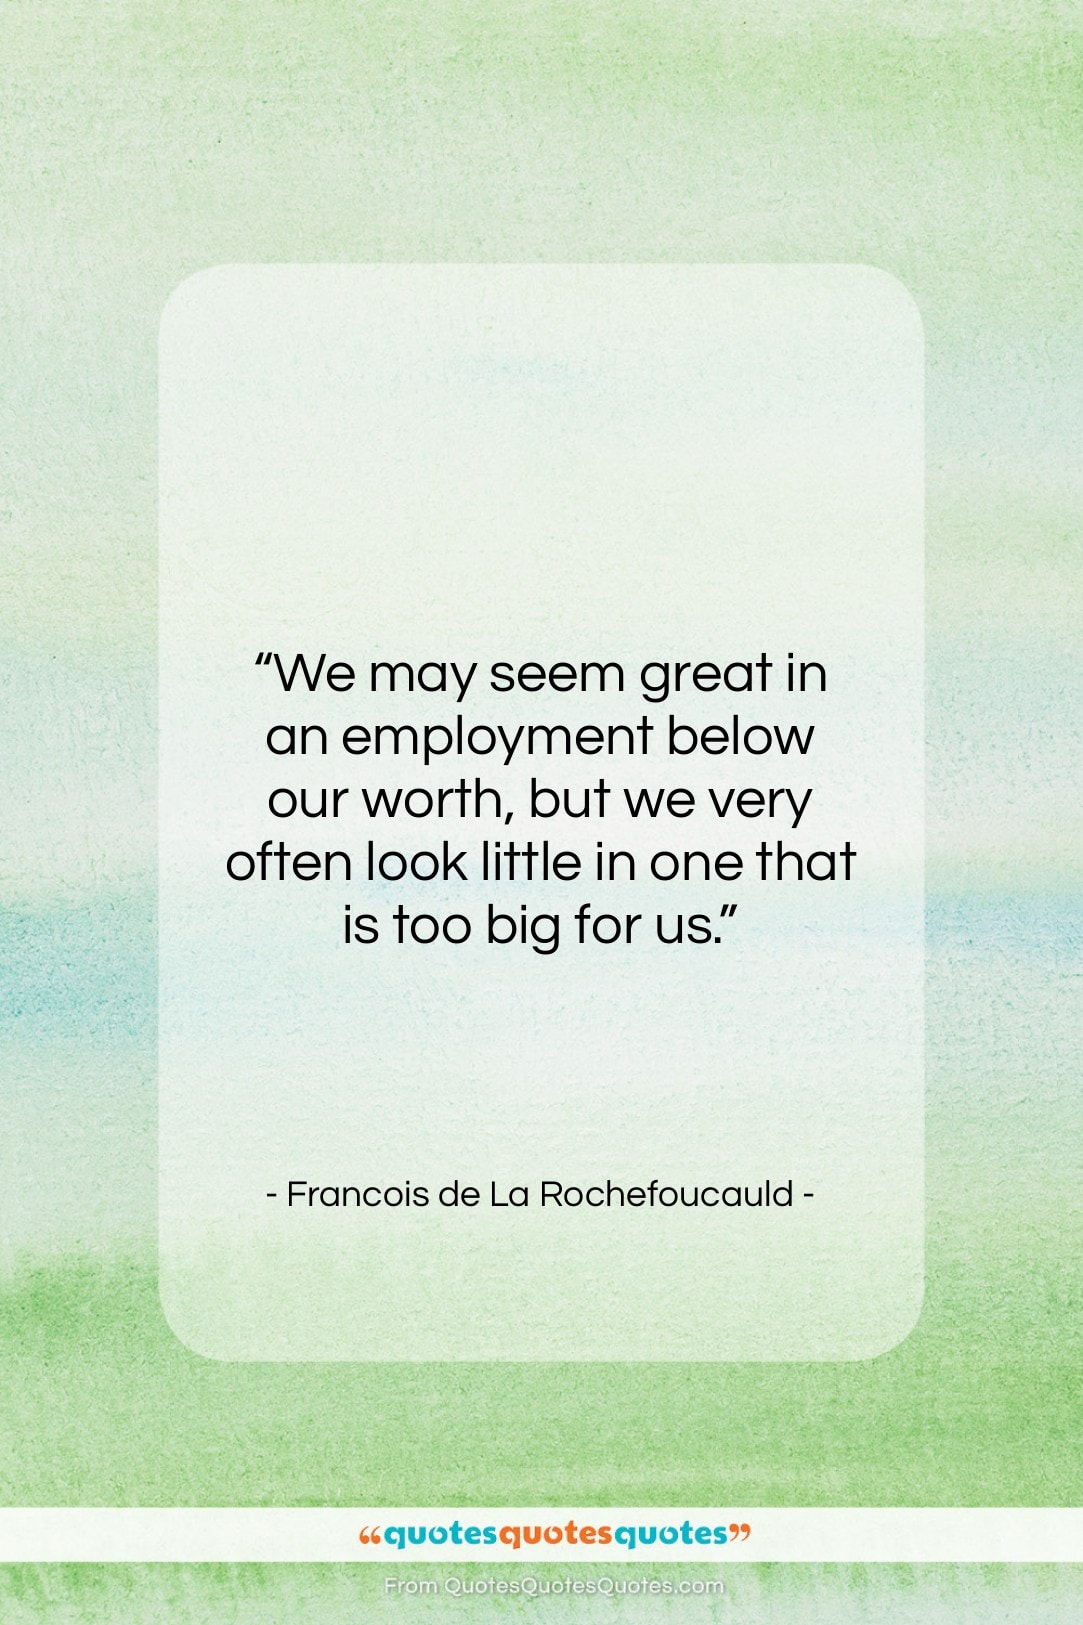 """Francois de La Rochefoucauld quote: """"We may seem great in an employment…""""- at QuotesQuotesQuotes.com"""